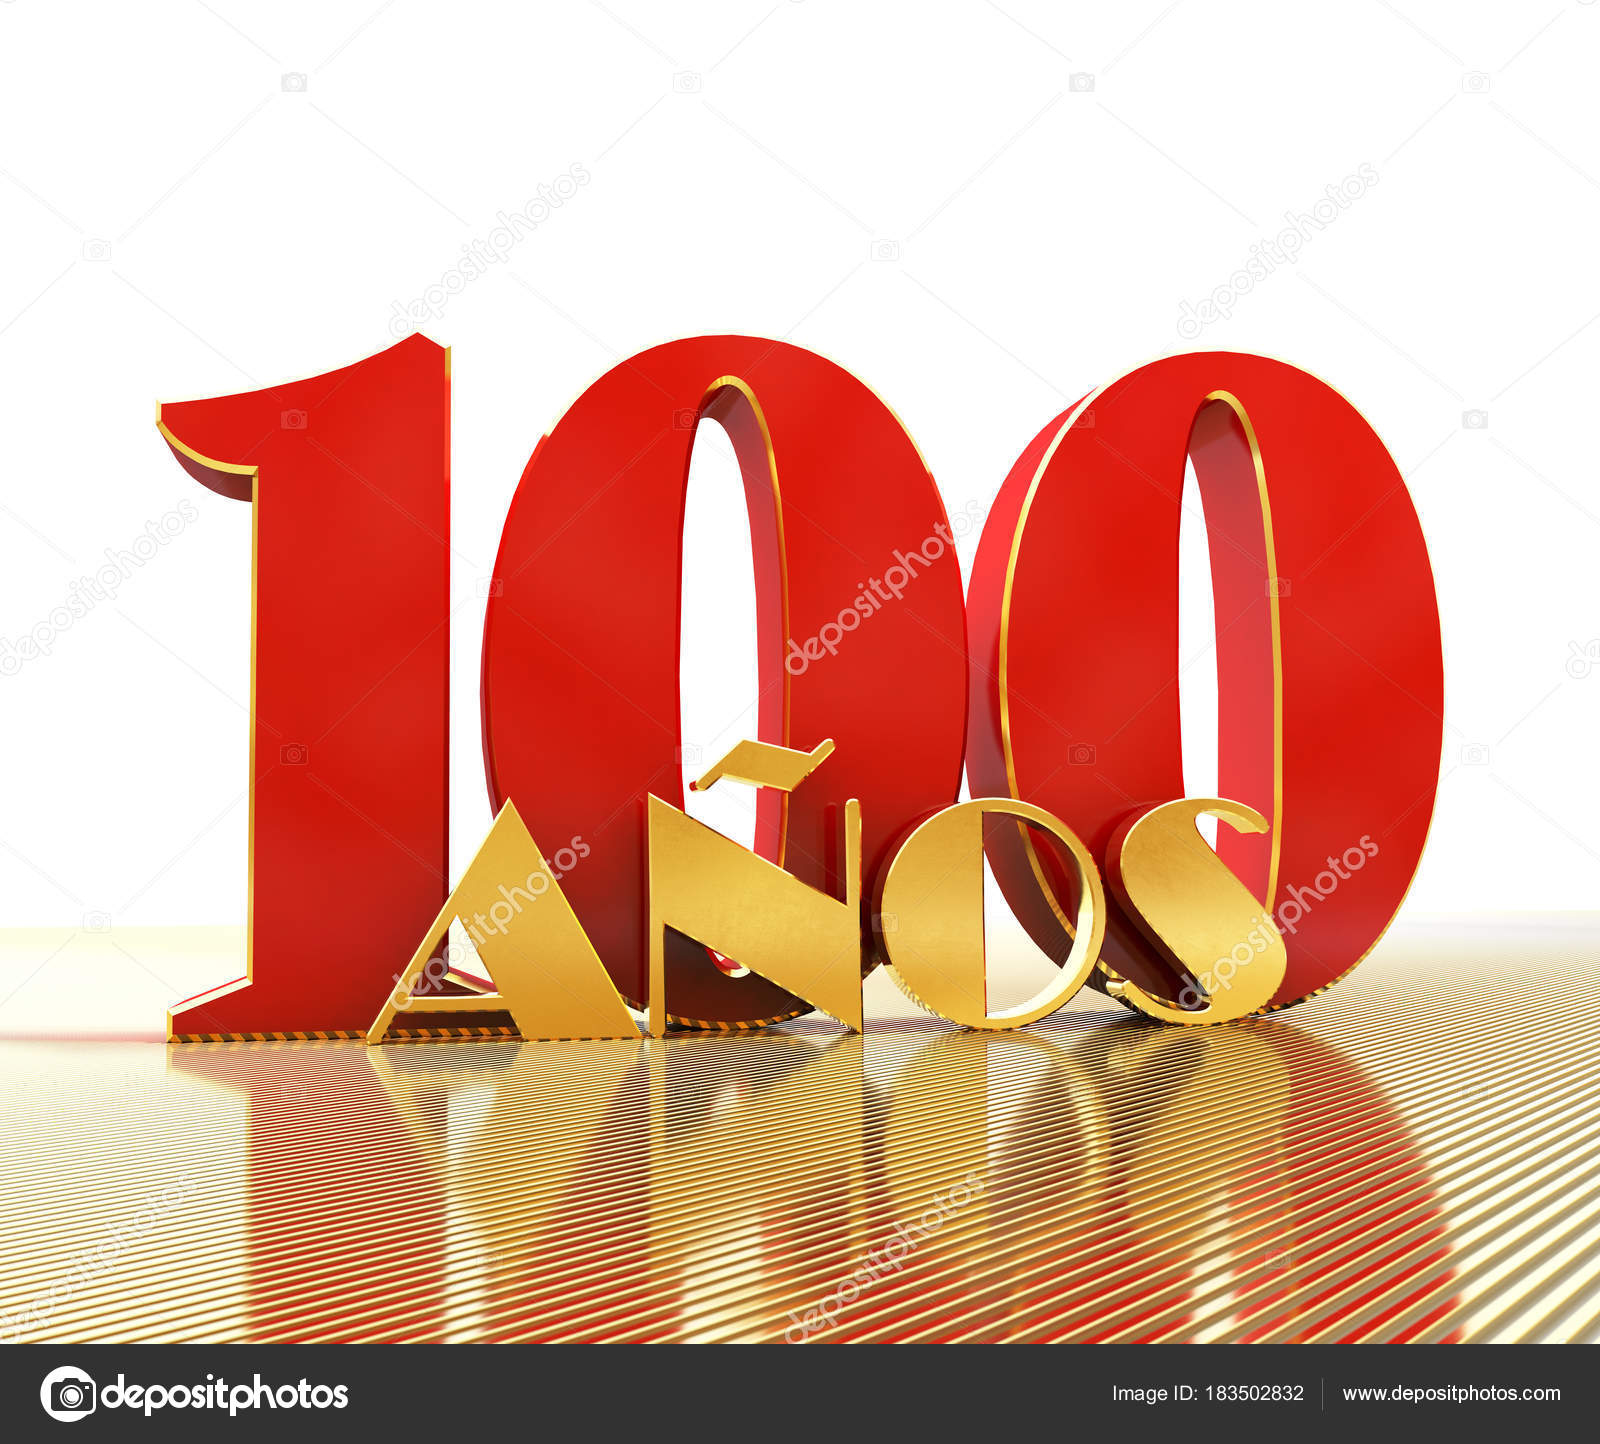 one hundred one in spanish